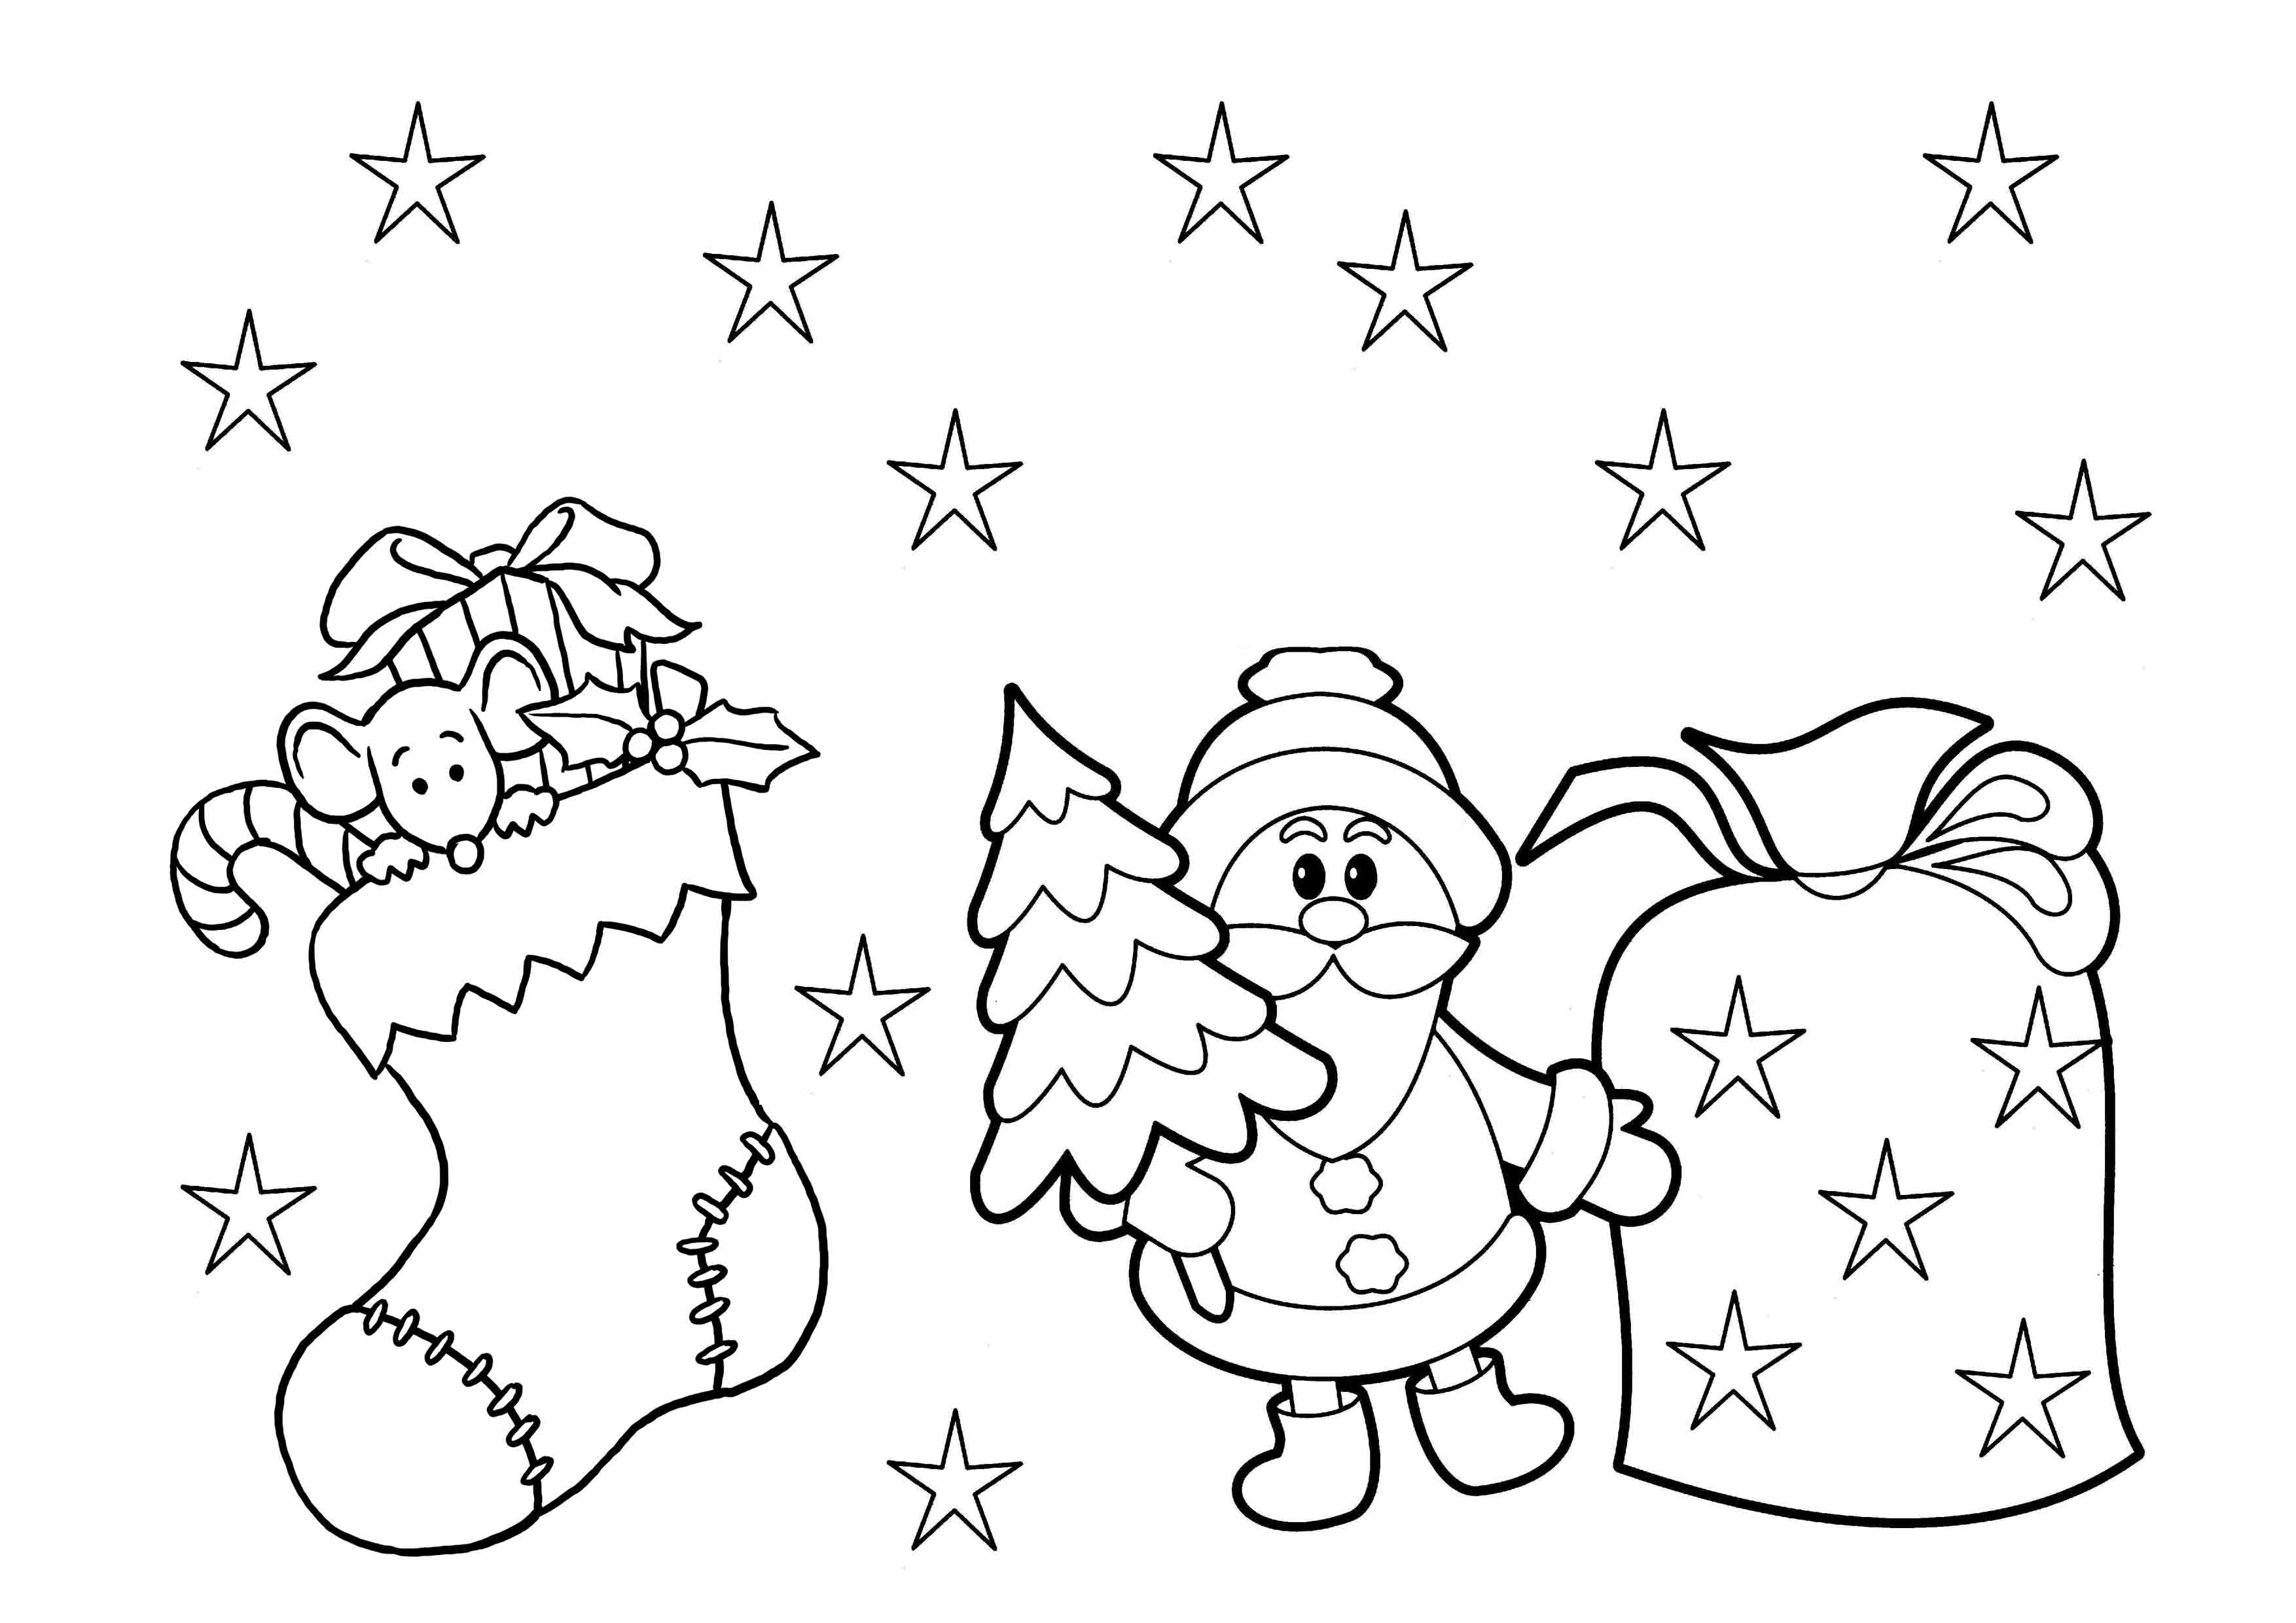 Christmas Color Pages For Kids Coloring Christmas Coloring Pages For Preschoolers Free Printable